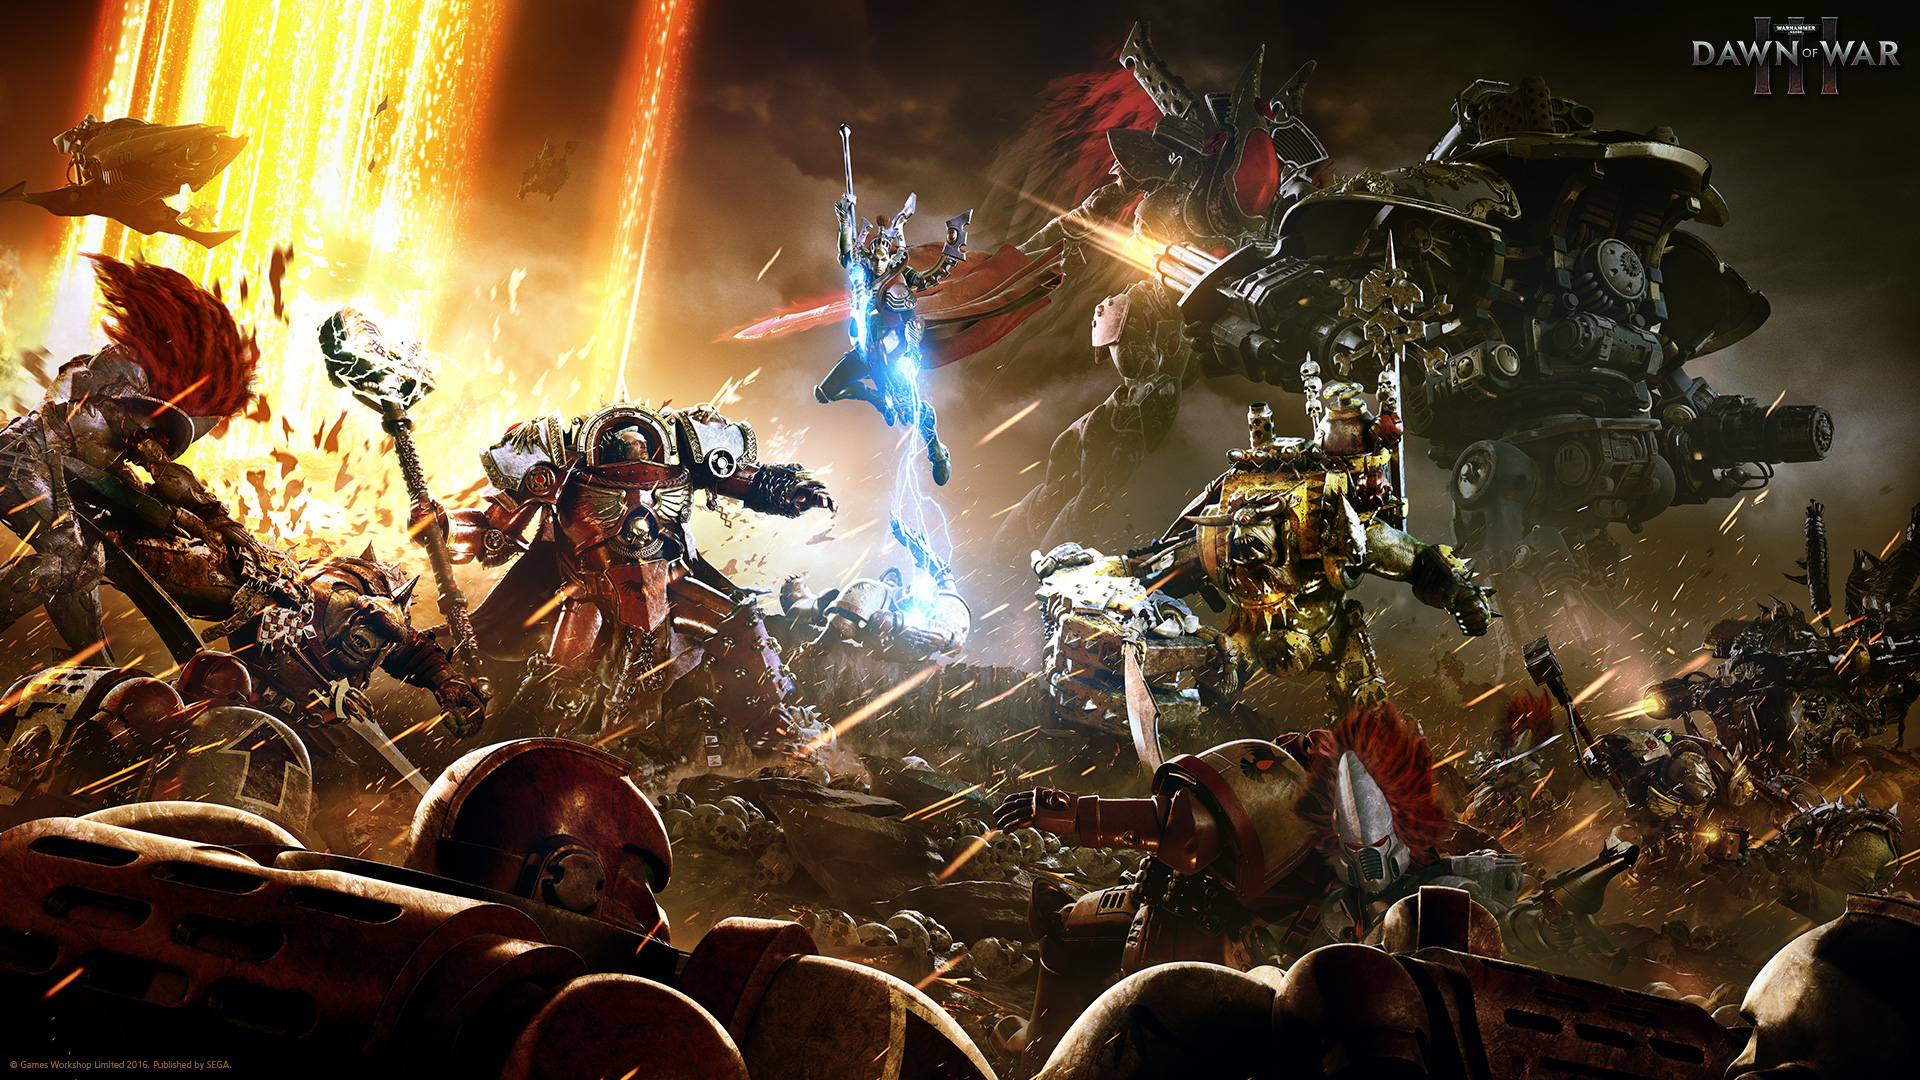 Dawn of War 3 battle